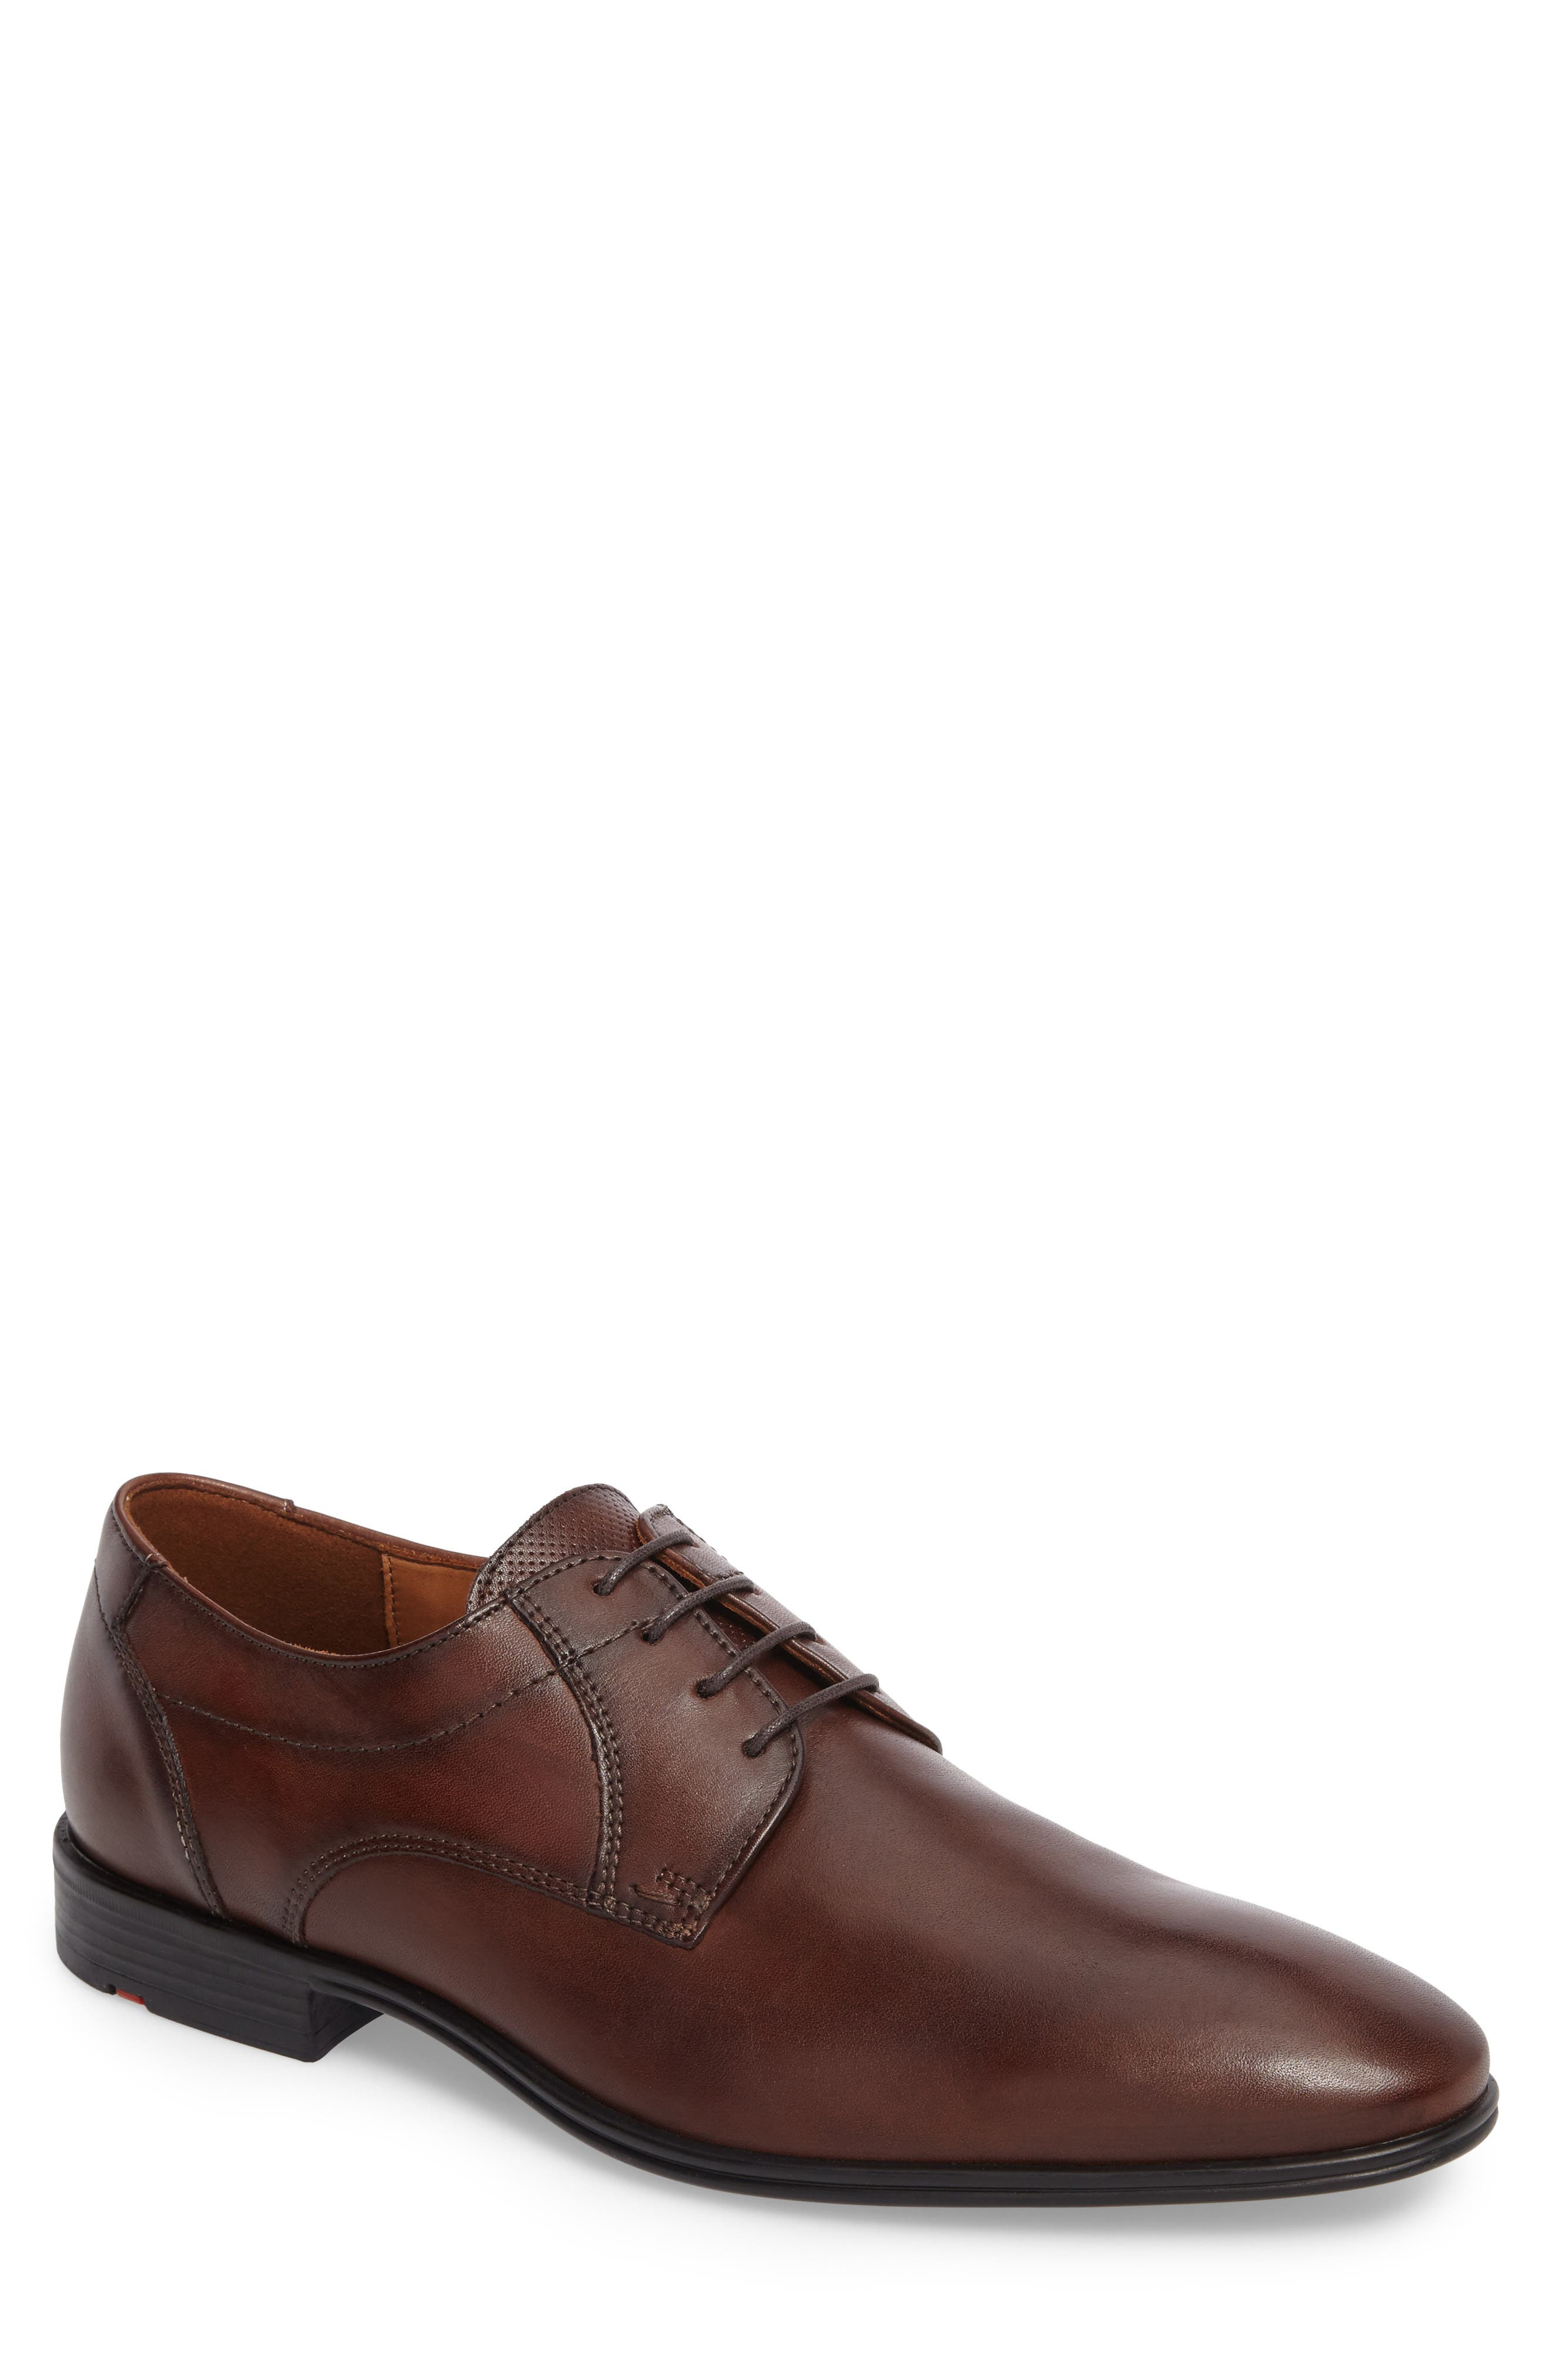 Osmond Plain Toe Derby,                         Main,                         color, T.D.Moro Leather